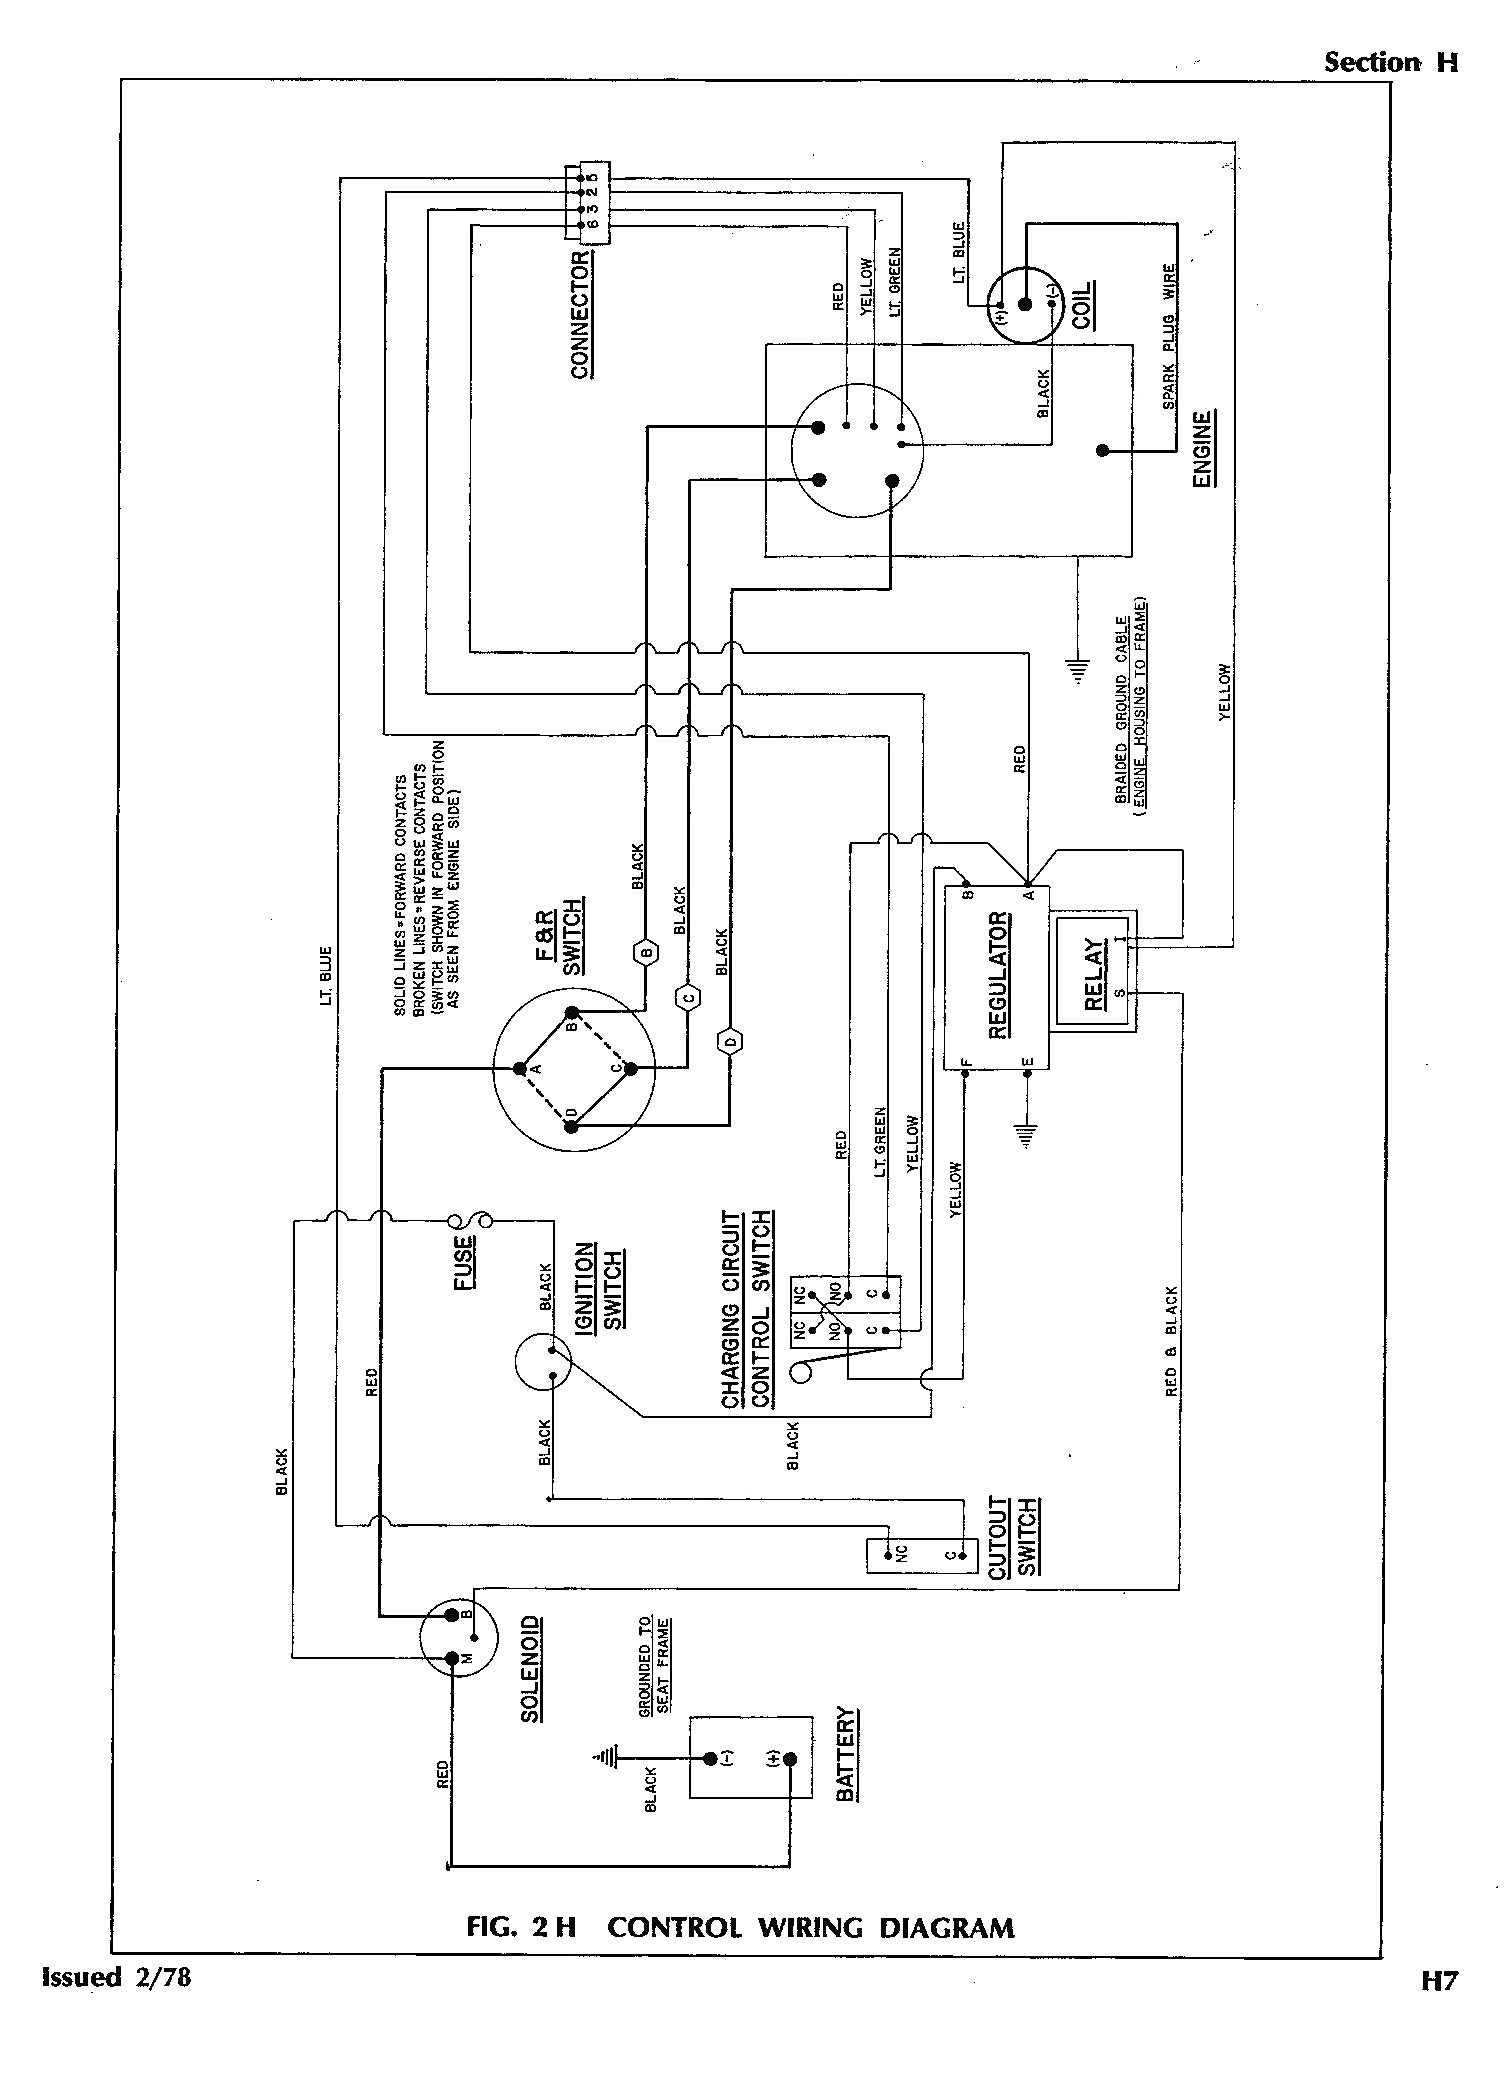 Diagram 1997 Ez Go Gas Wiring Diagram Full Version Hd Quality Wiring Diagram Blogxgoo Mefpie Fr